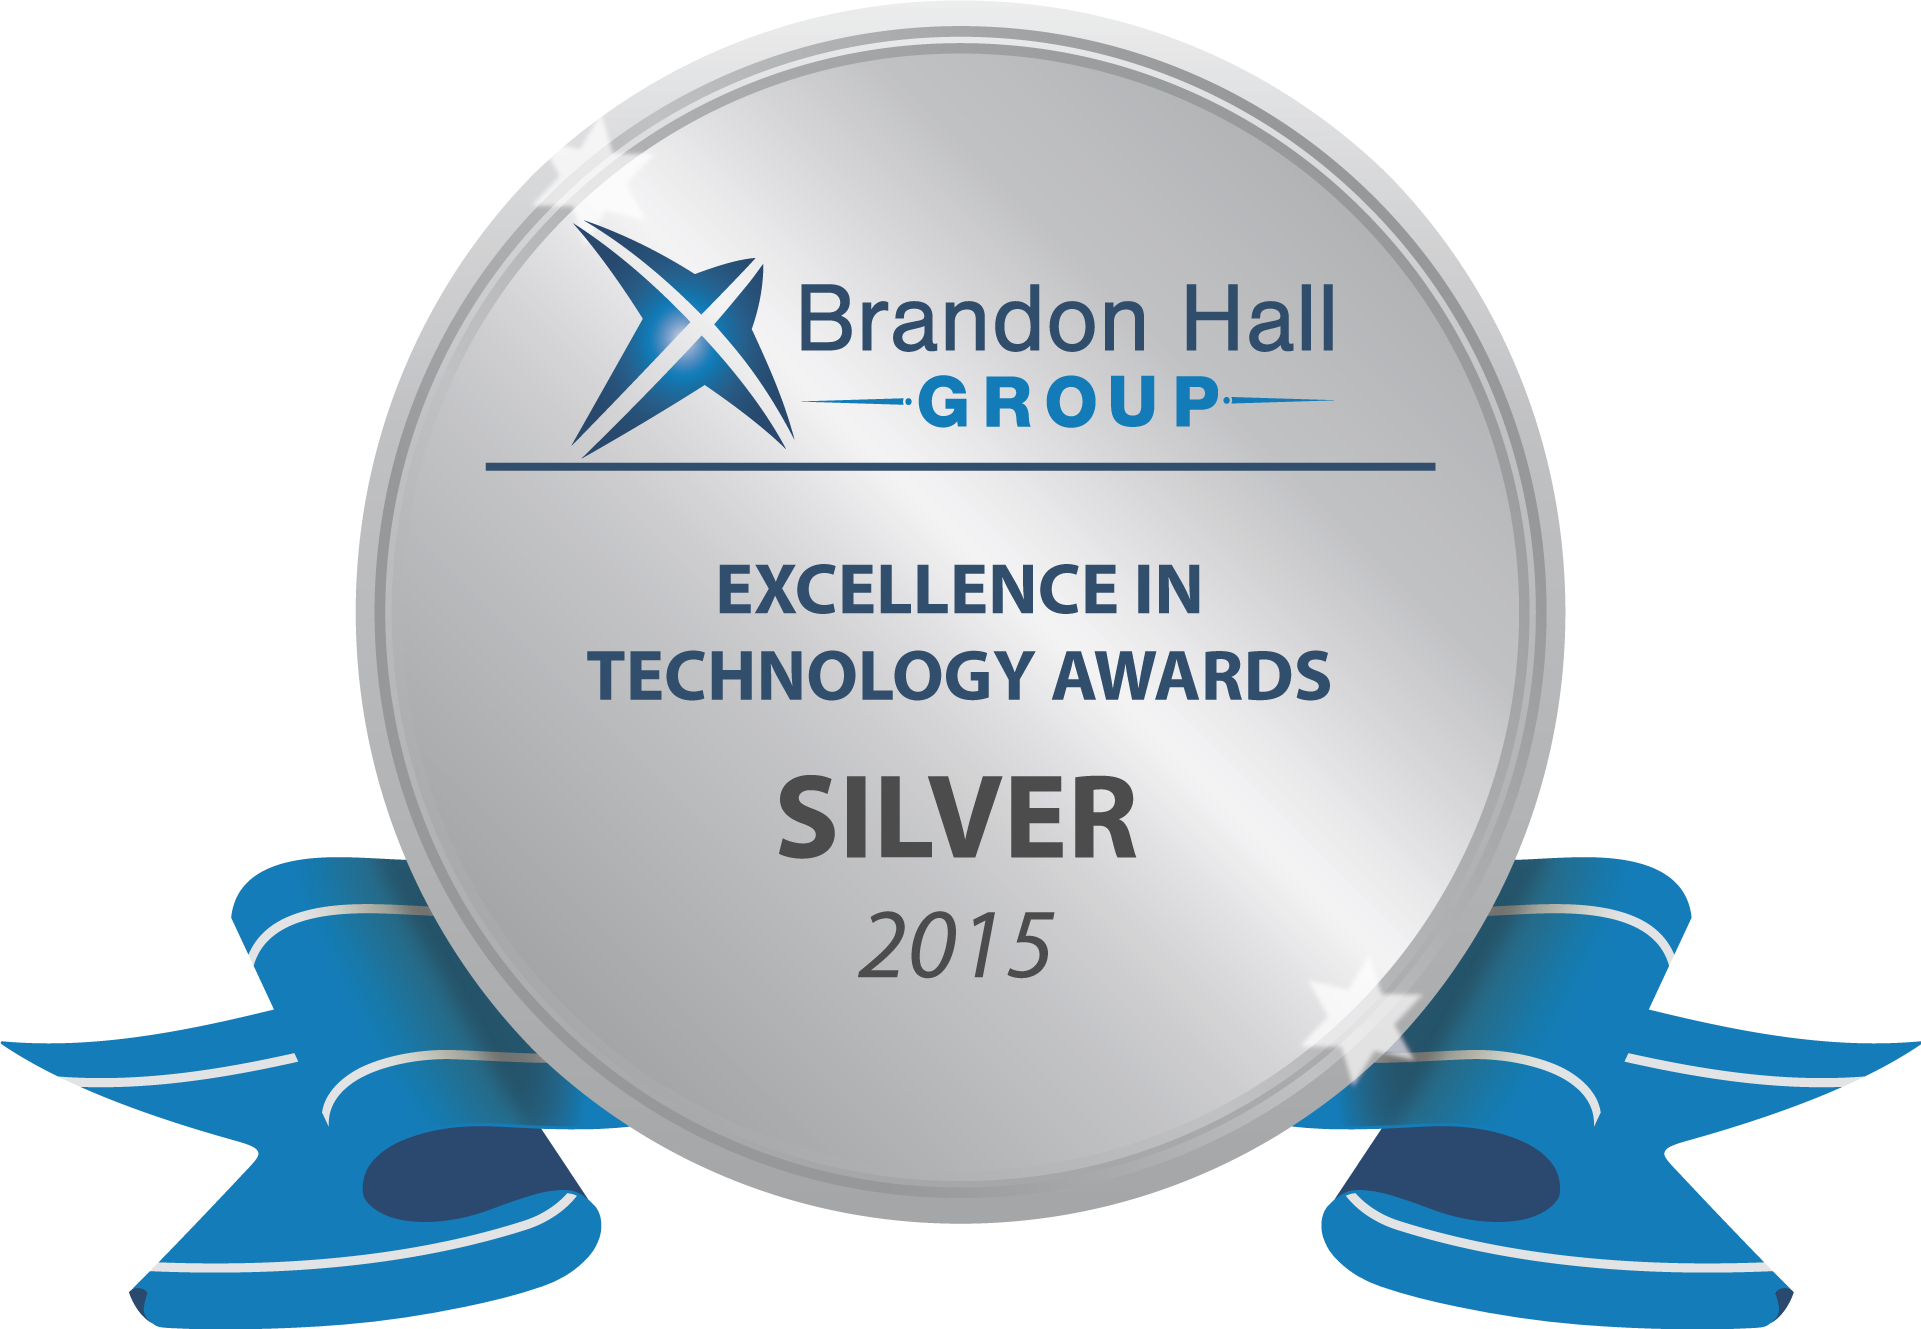 Silver Tech Award 2015 by Brandon Hall